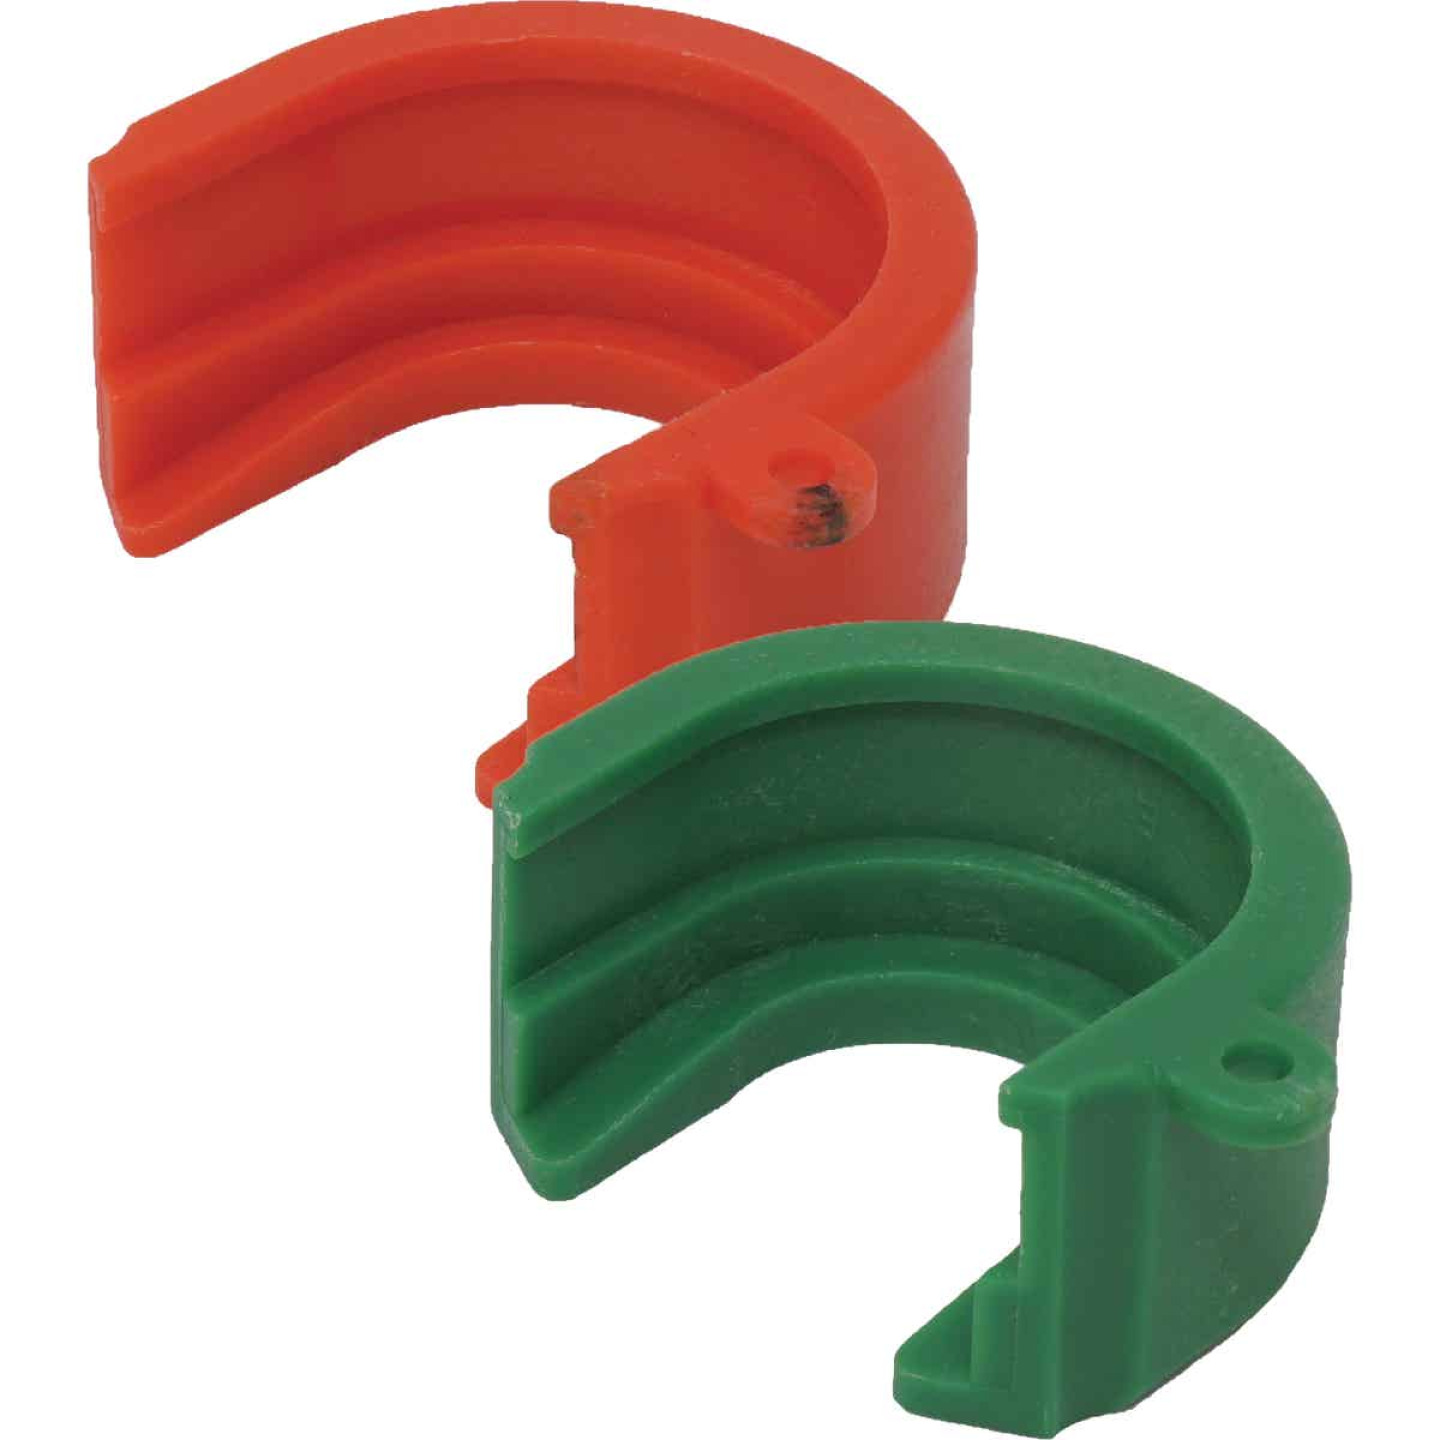 Southwire SimPush 1/2 In. & 3/4 In. Push-To-Install Non-Metallic & PVC Conduit Removal Tool Image 1